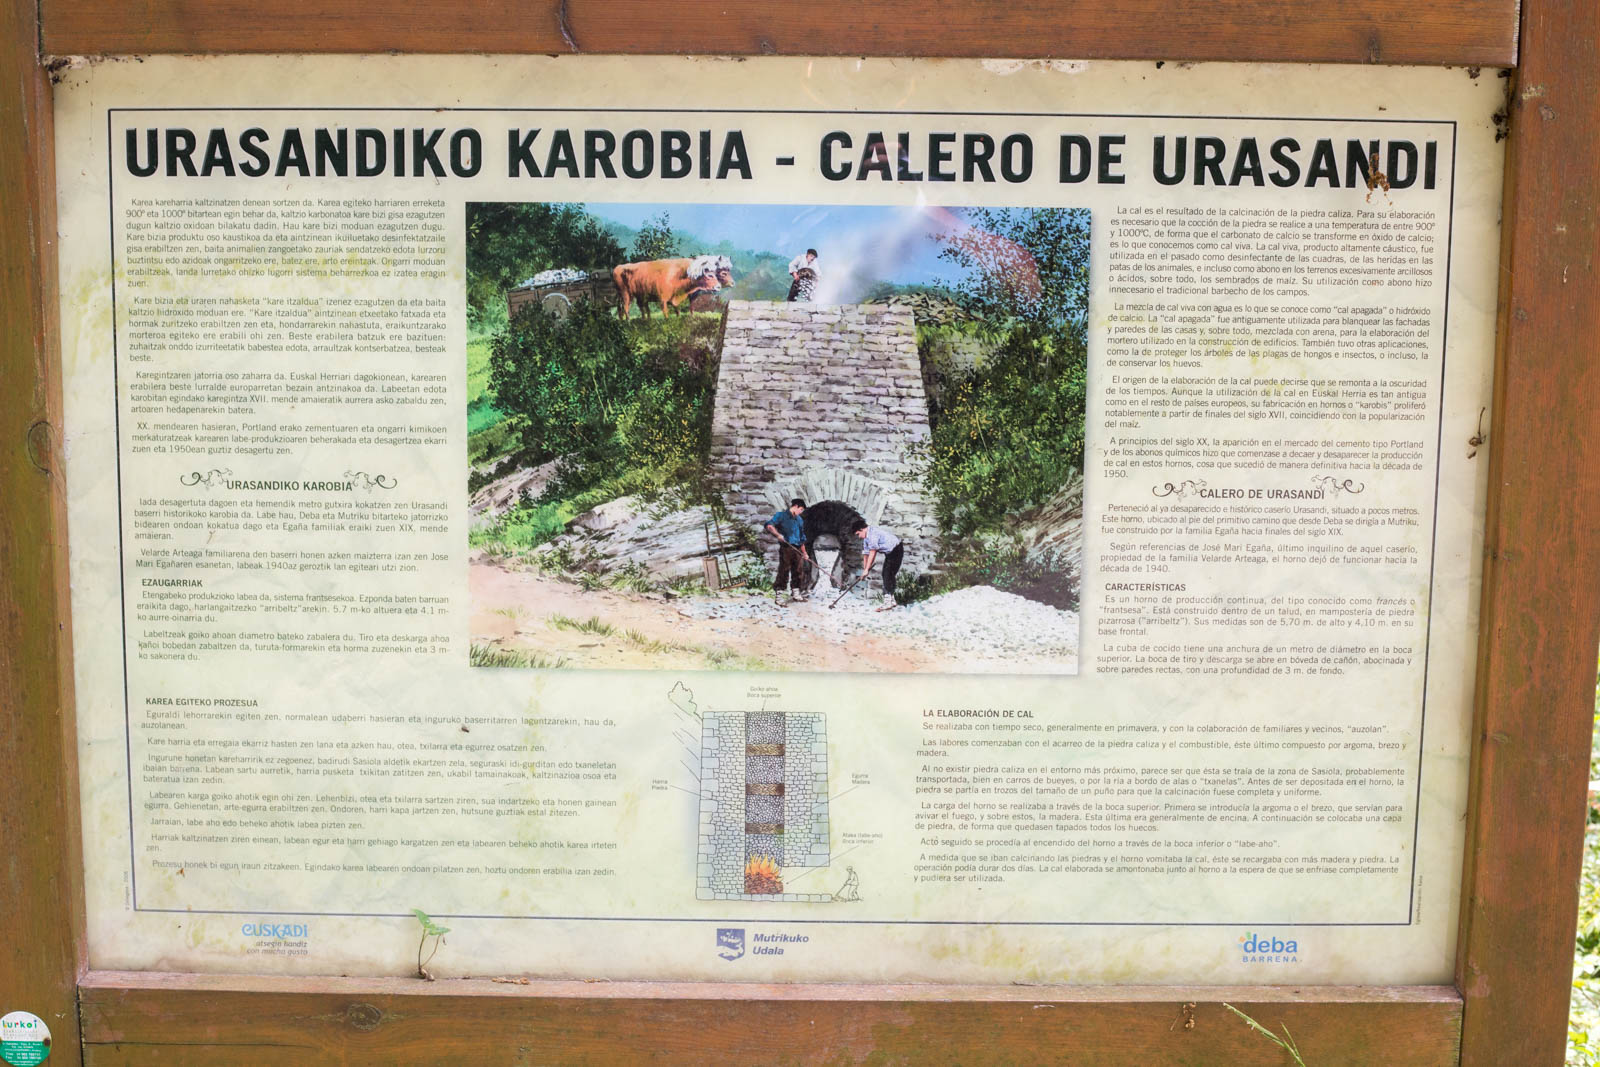 Urasandi's Lime Kiln (click on the photo for more information)